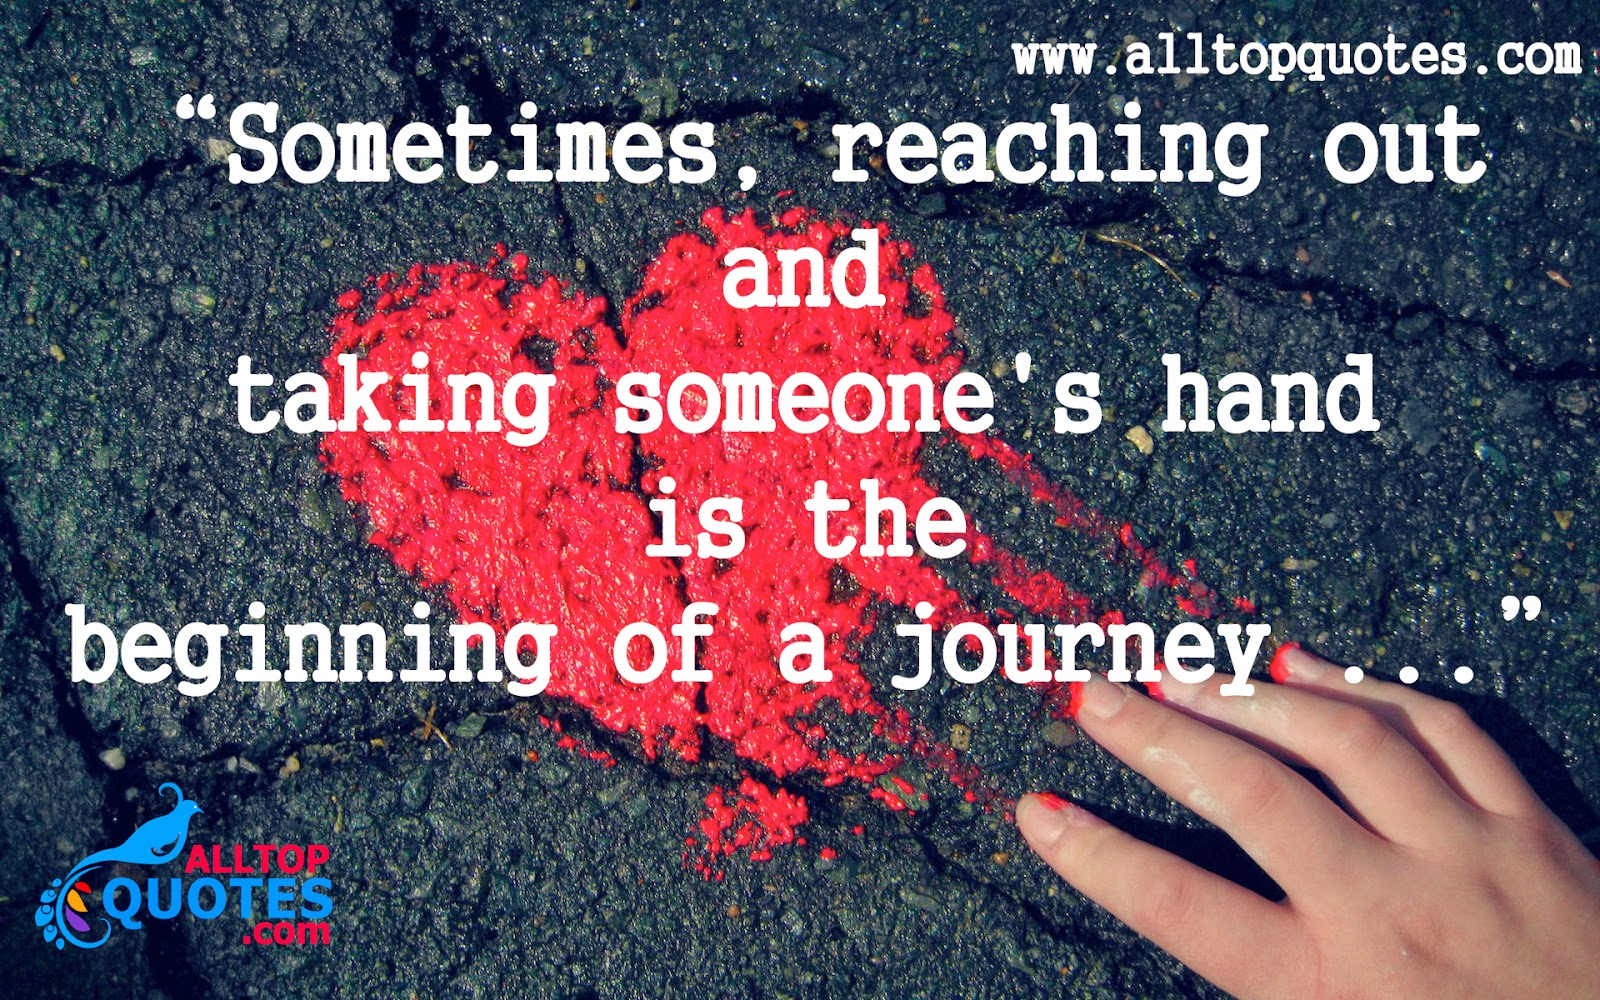 Life Journey Quotes In Hindi: Beginning Of A Journey Nice Life Quotes In English